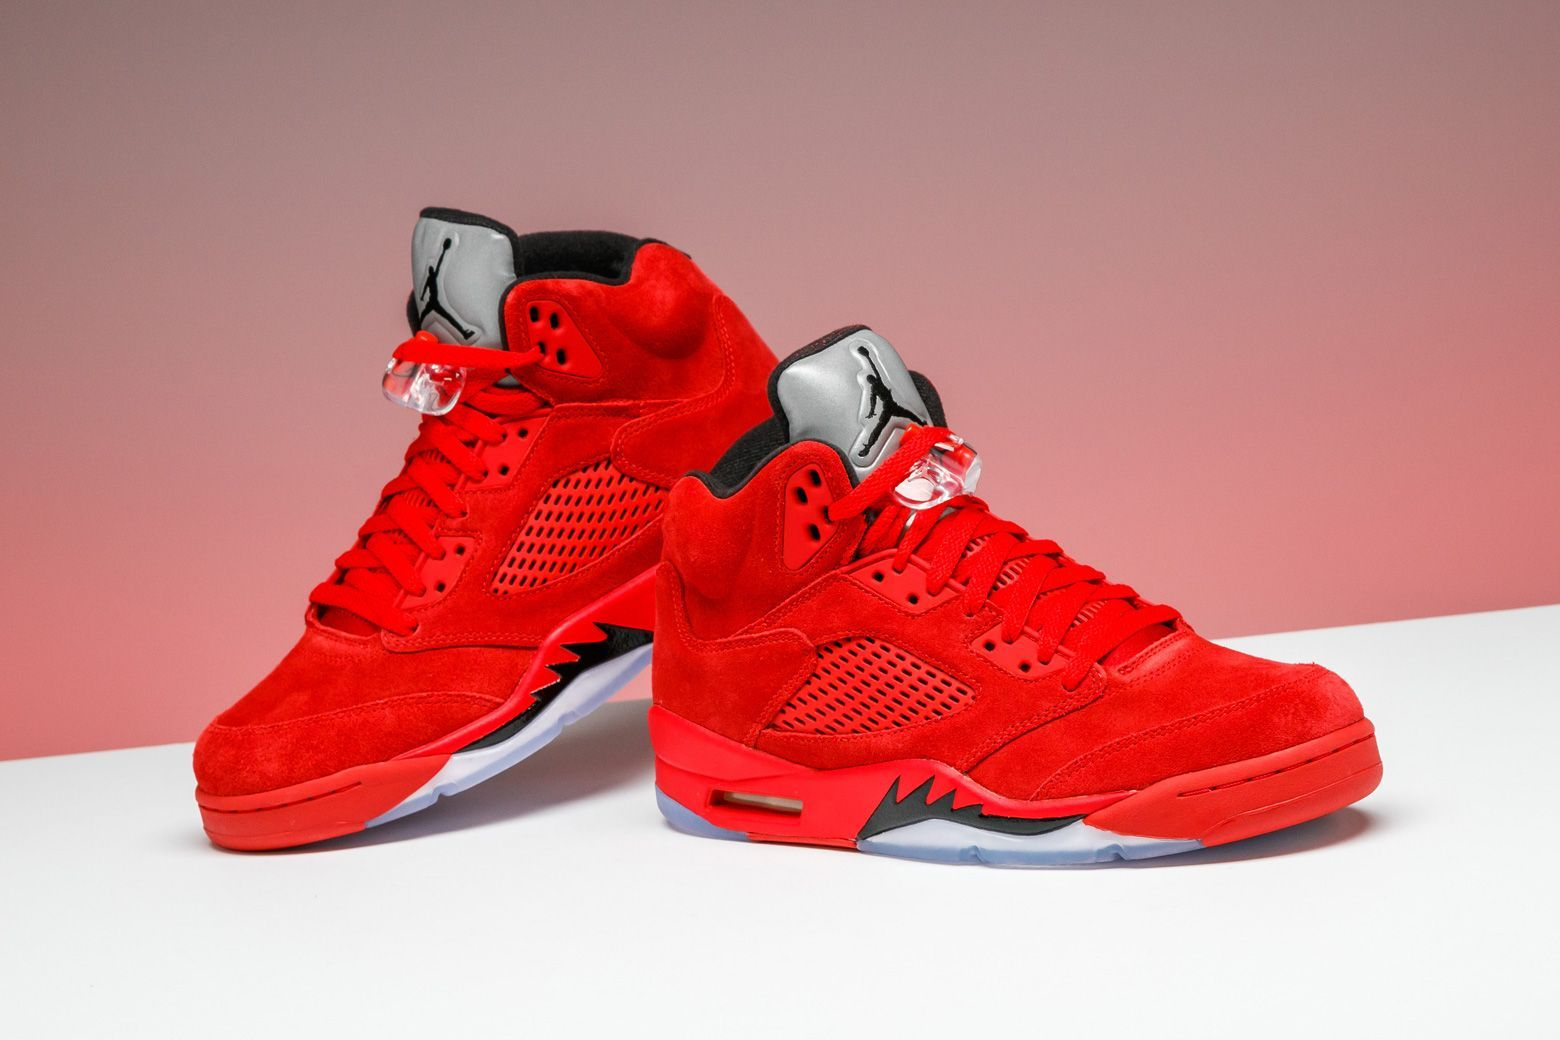 sale retailer 3204d 0b434 EARLY ACCESS  Air Jordan 5 Red Suede. Available NOW for retail while  supplies last.